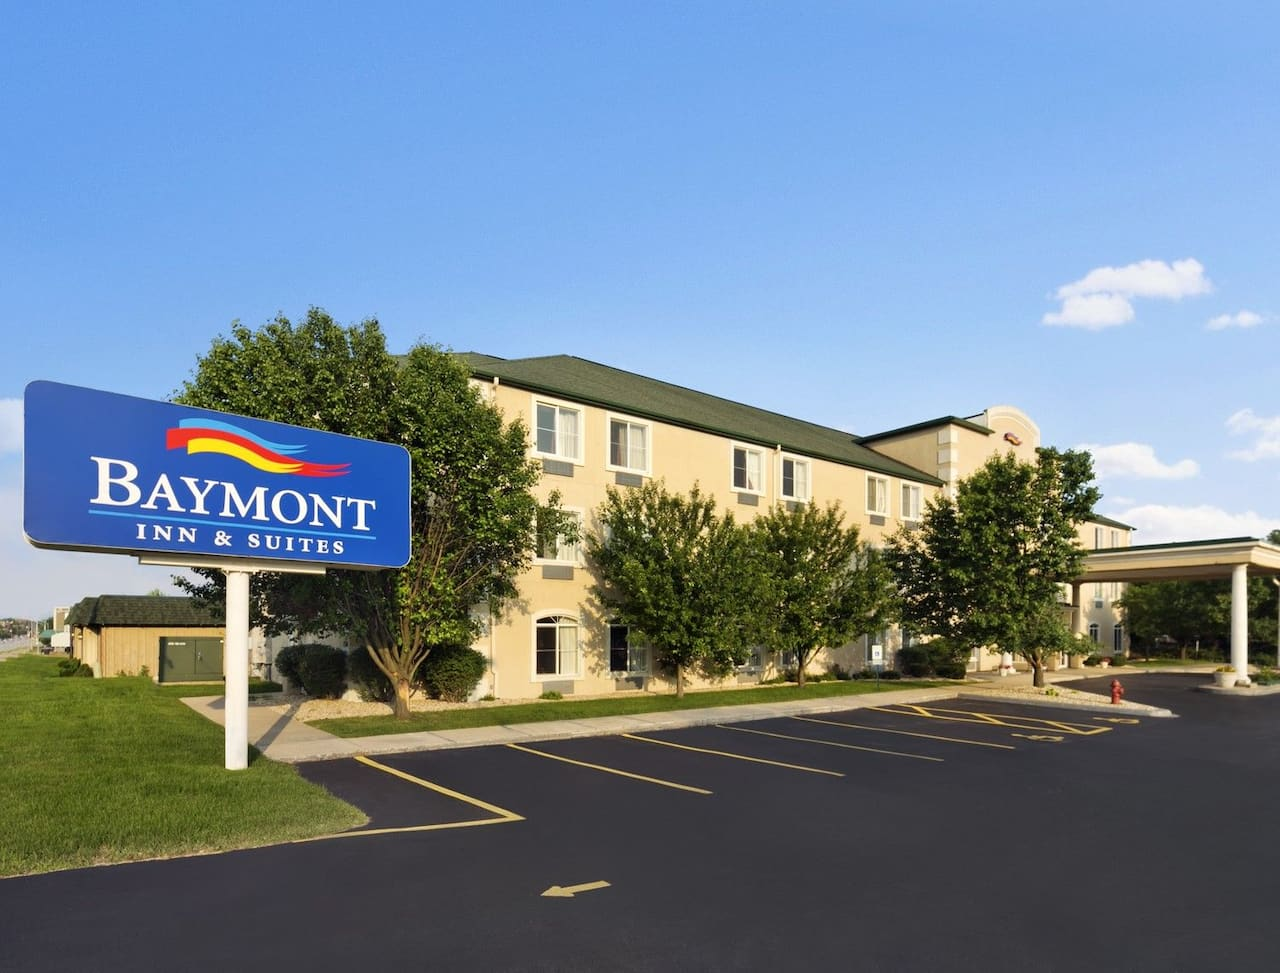 Baymont Inn & Suites DeKalb in North Aurora, Illinois